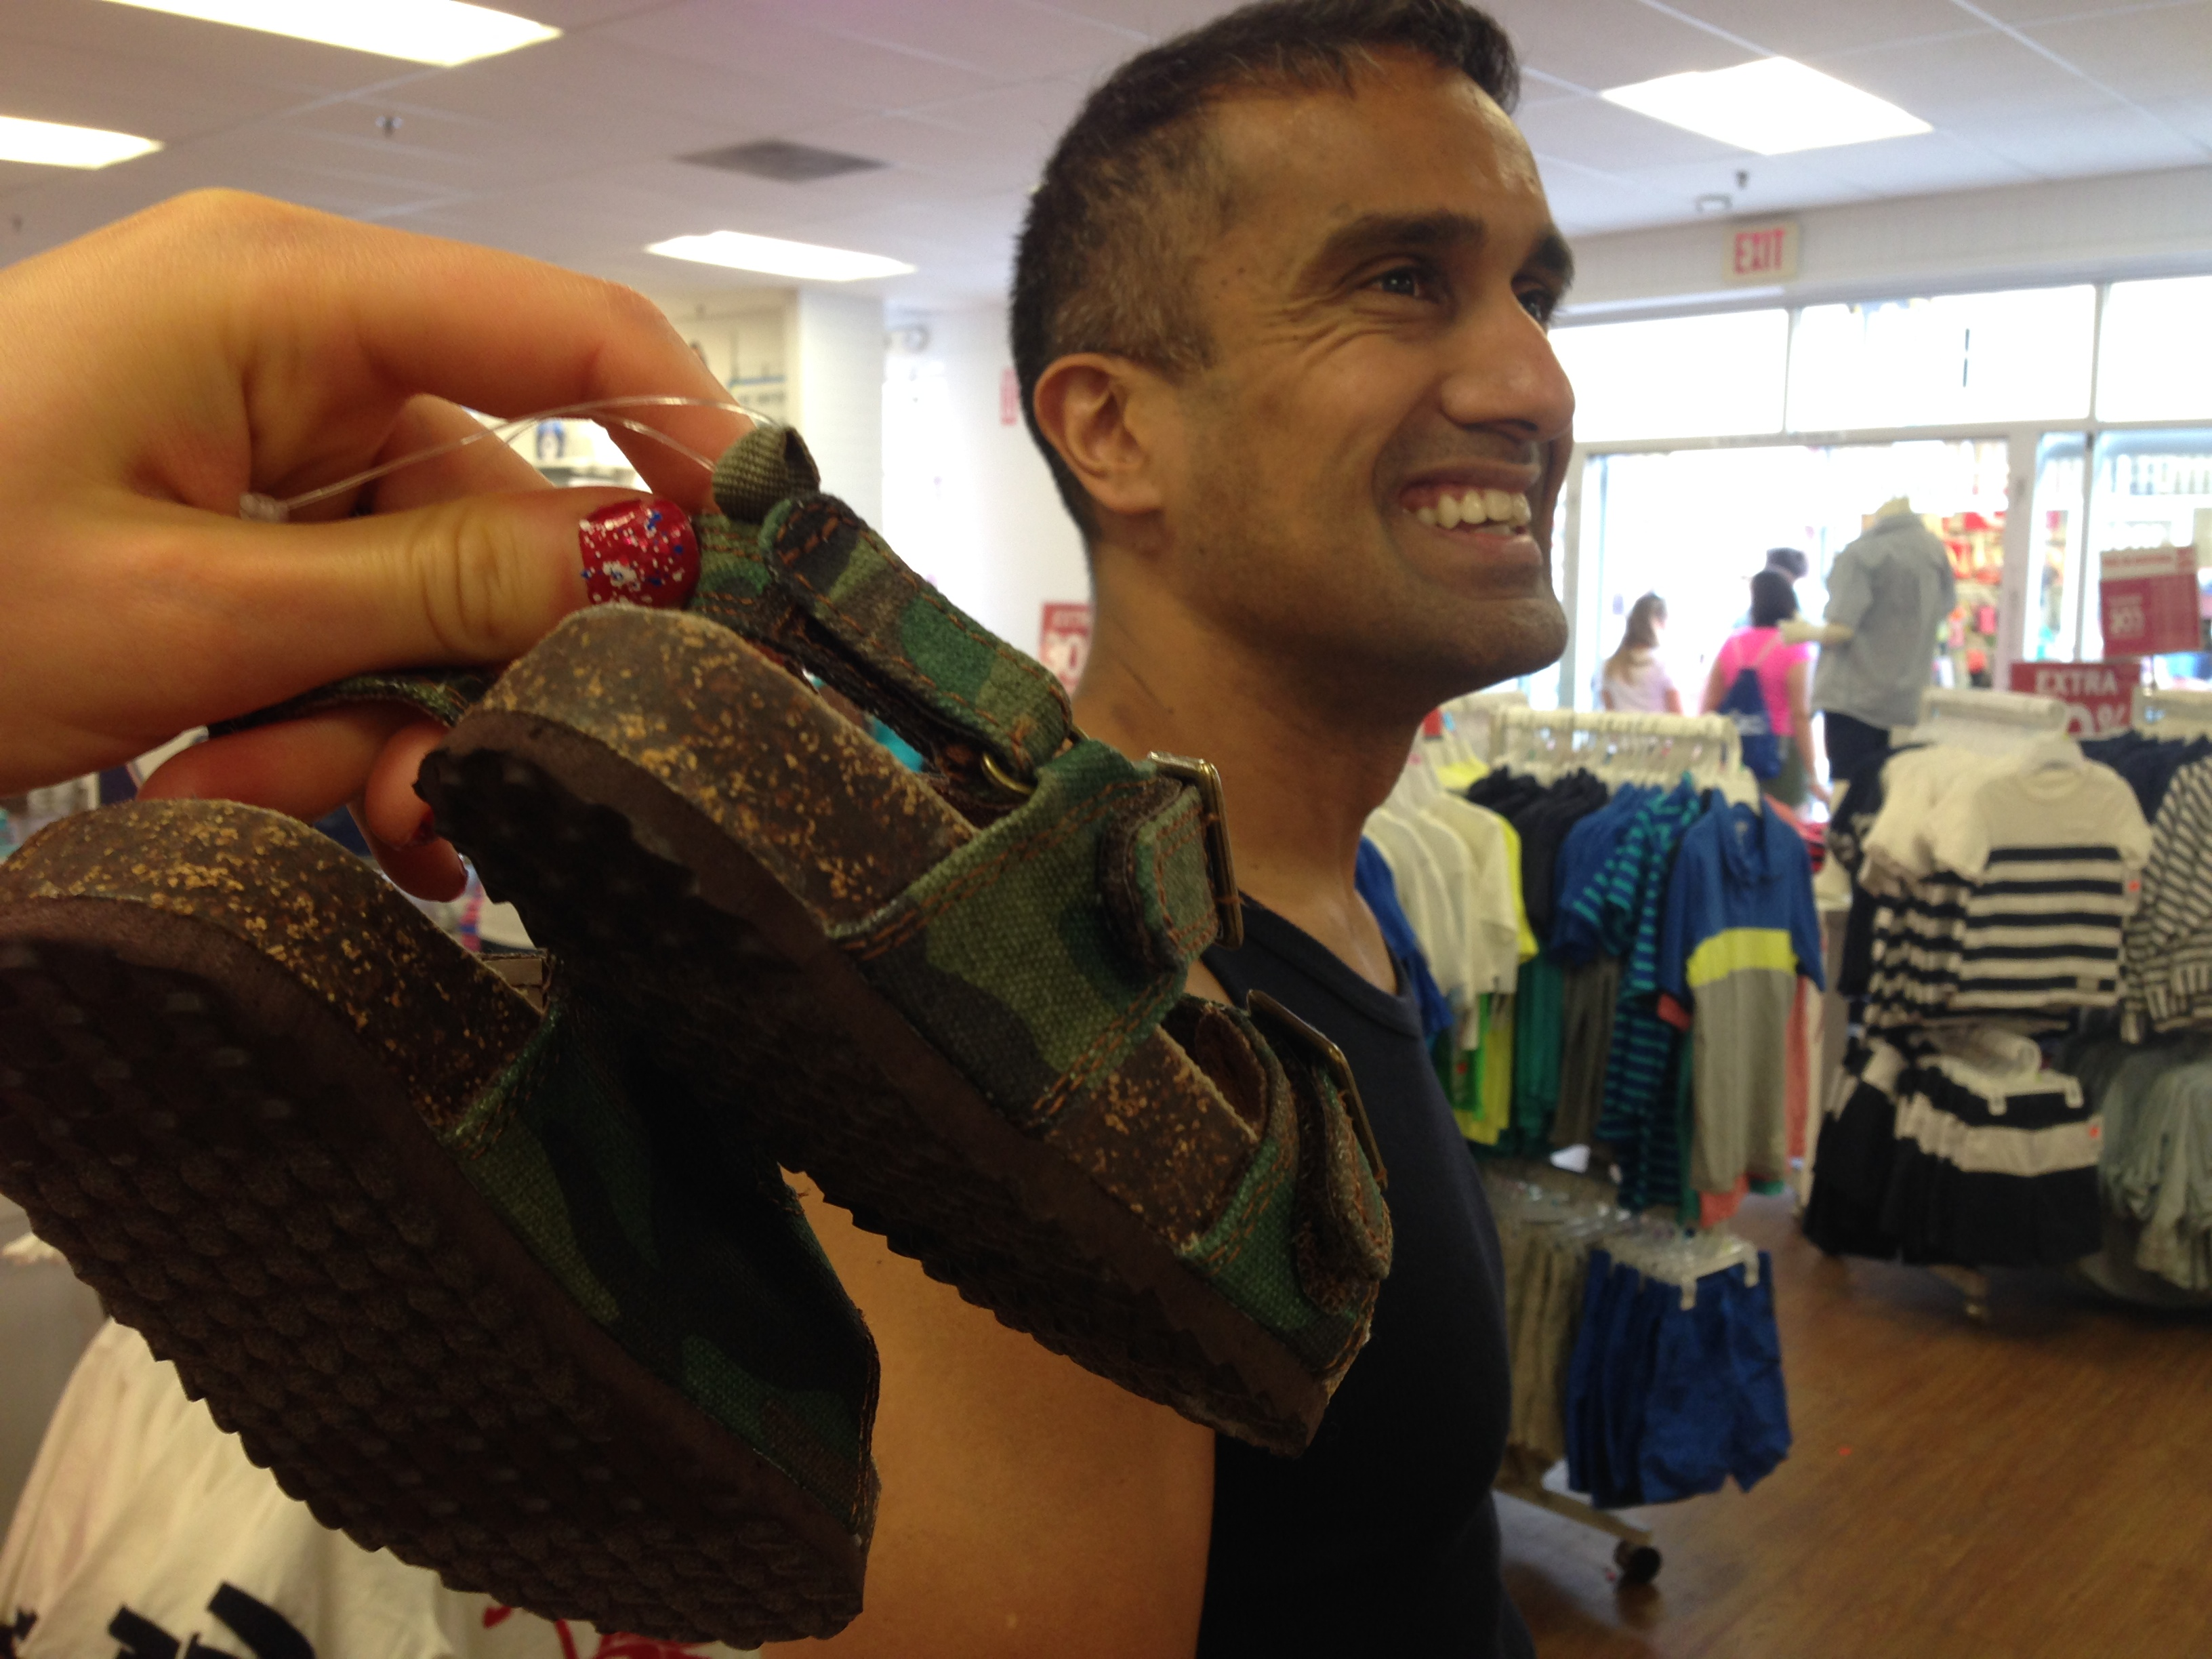 ... But we shunned them for other attractions. (Here, Deepak hears the pitter patter of bargain-clad feet at the Carter's store in the outlet mall)